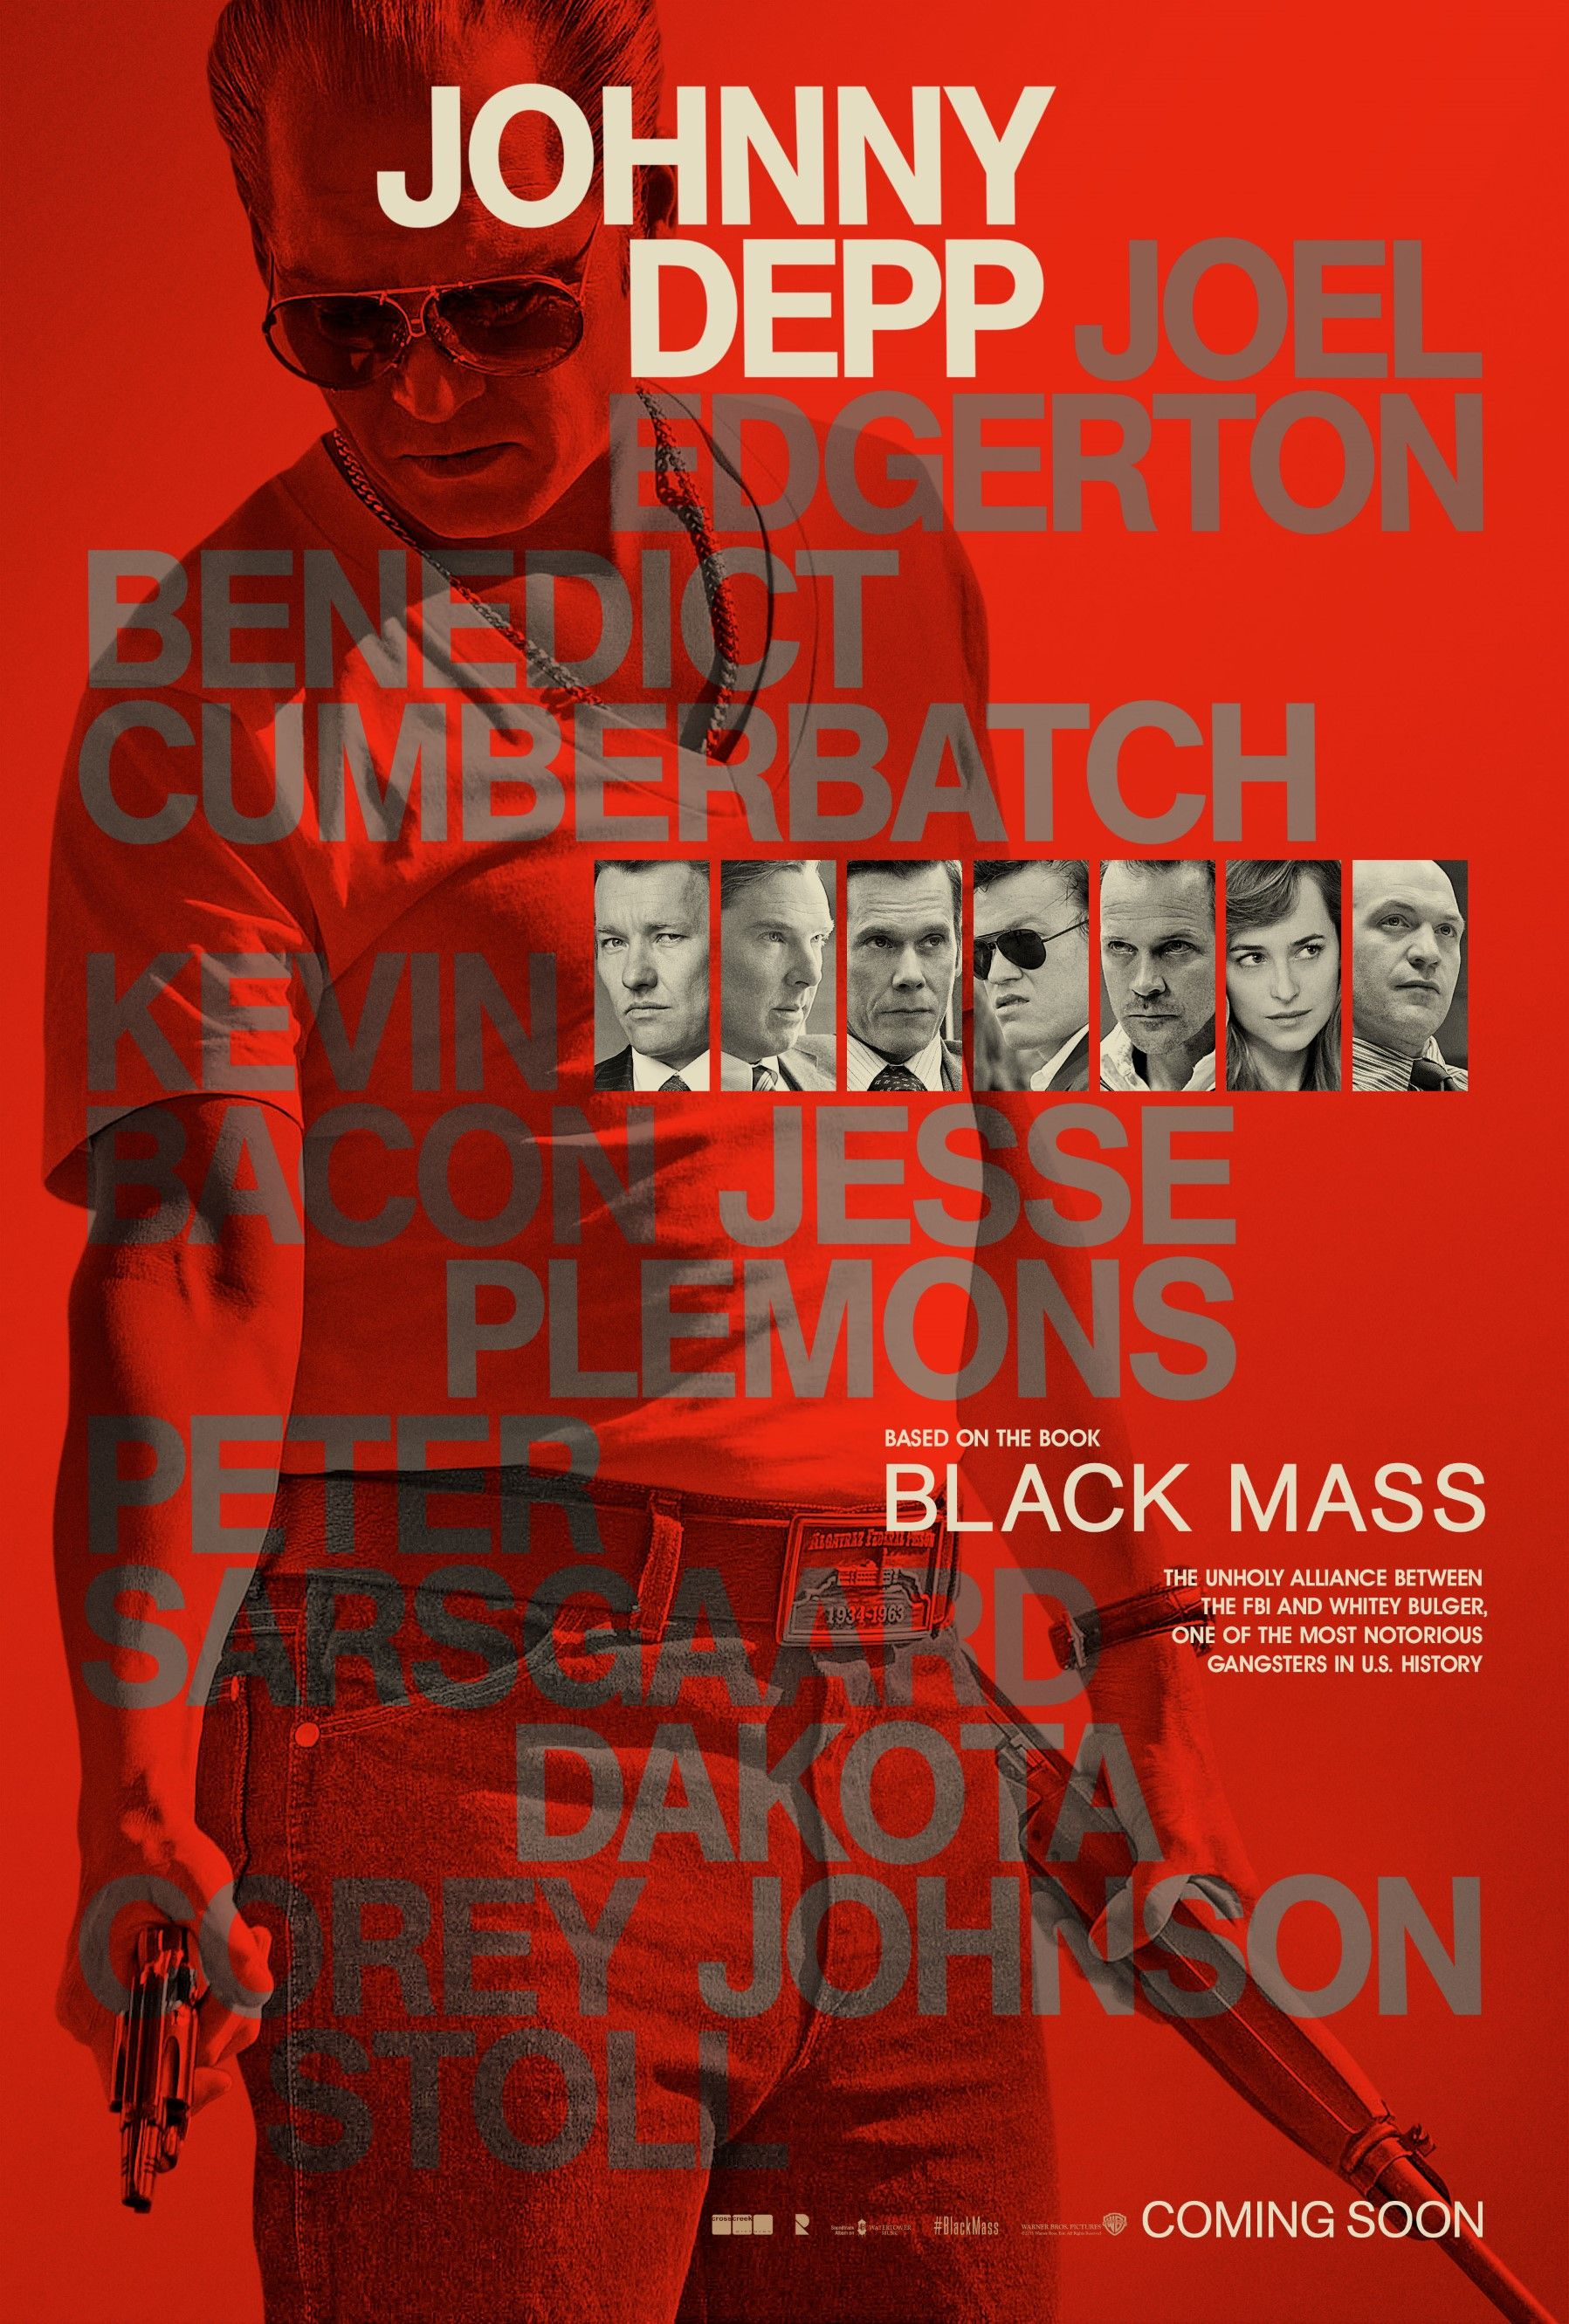 New Character Posters for Black Mass